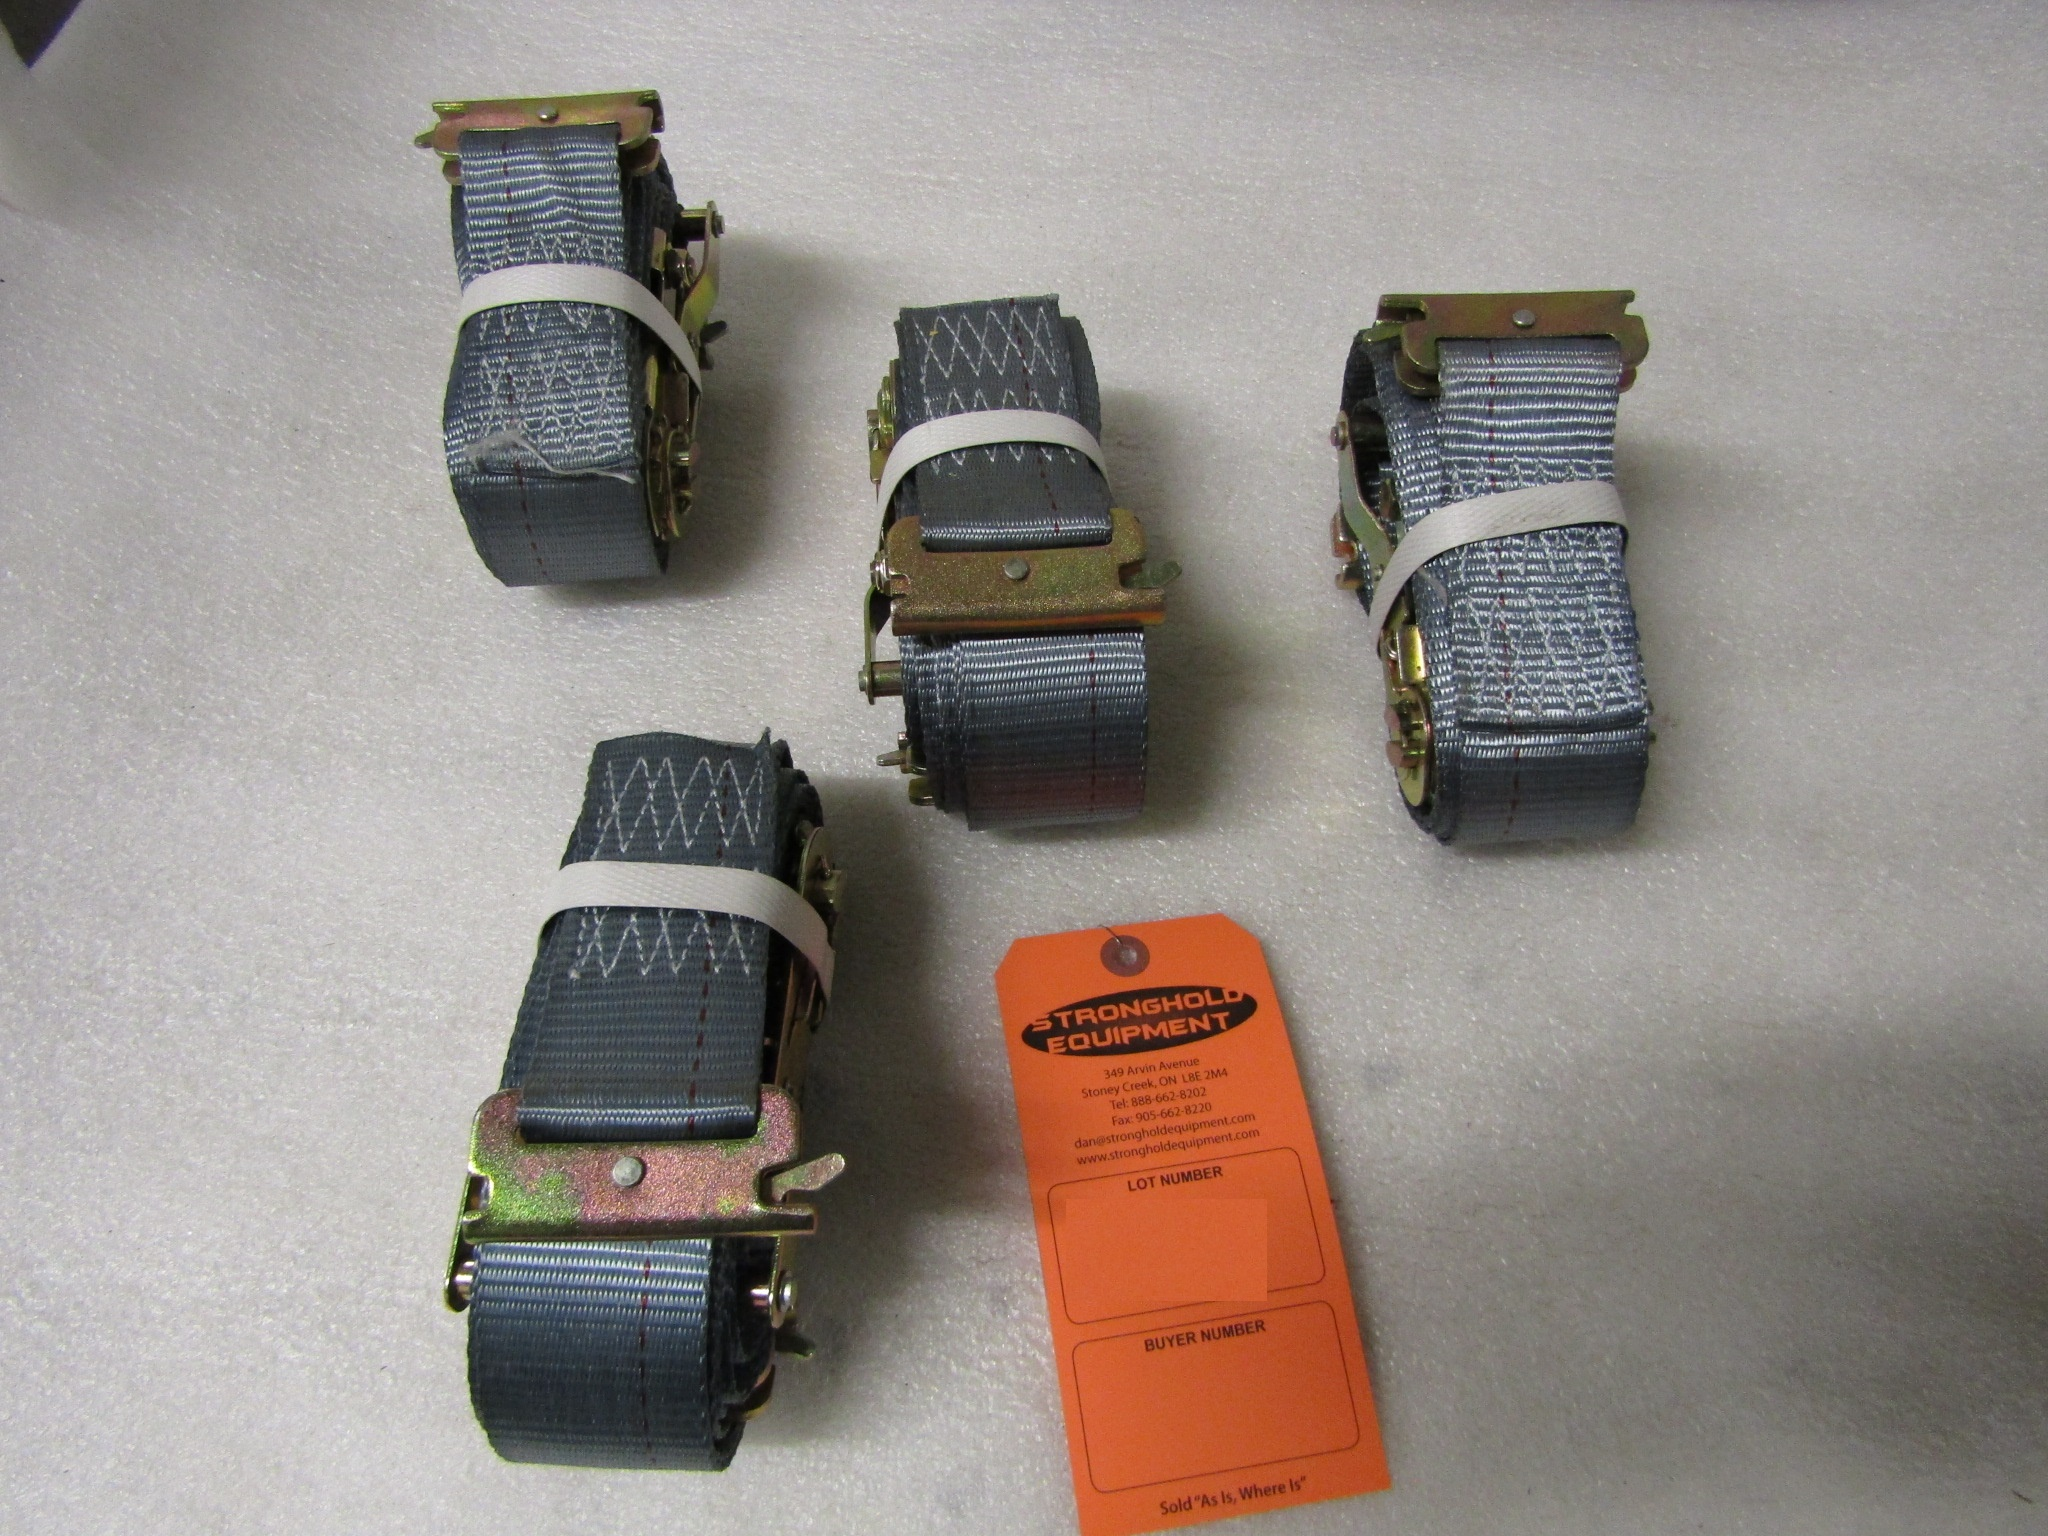 Lot 5 - Lot of 3 (3 units) Tie Down Ratchet Straps for truck use 15' length BRAND NEW